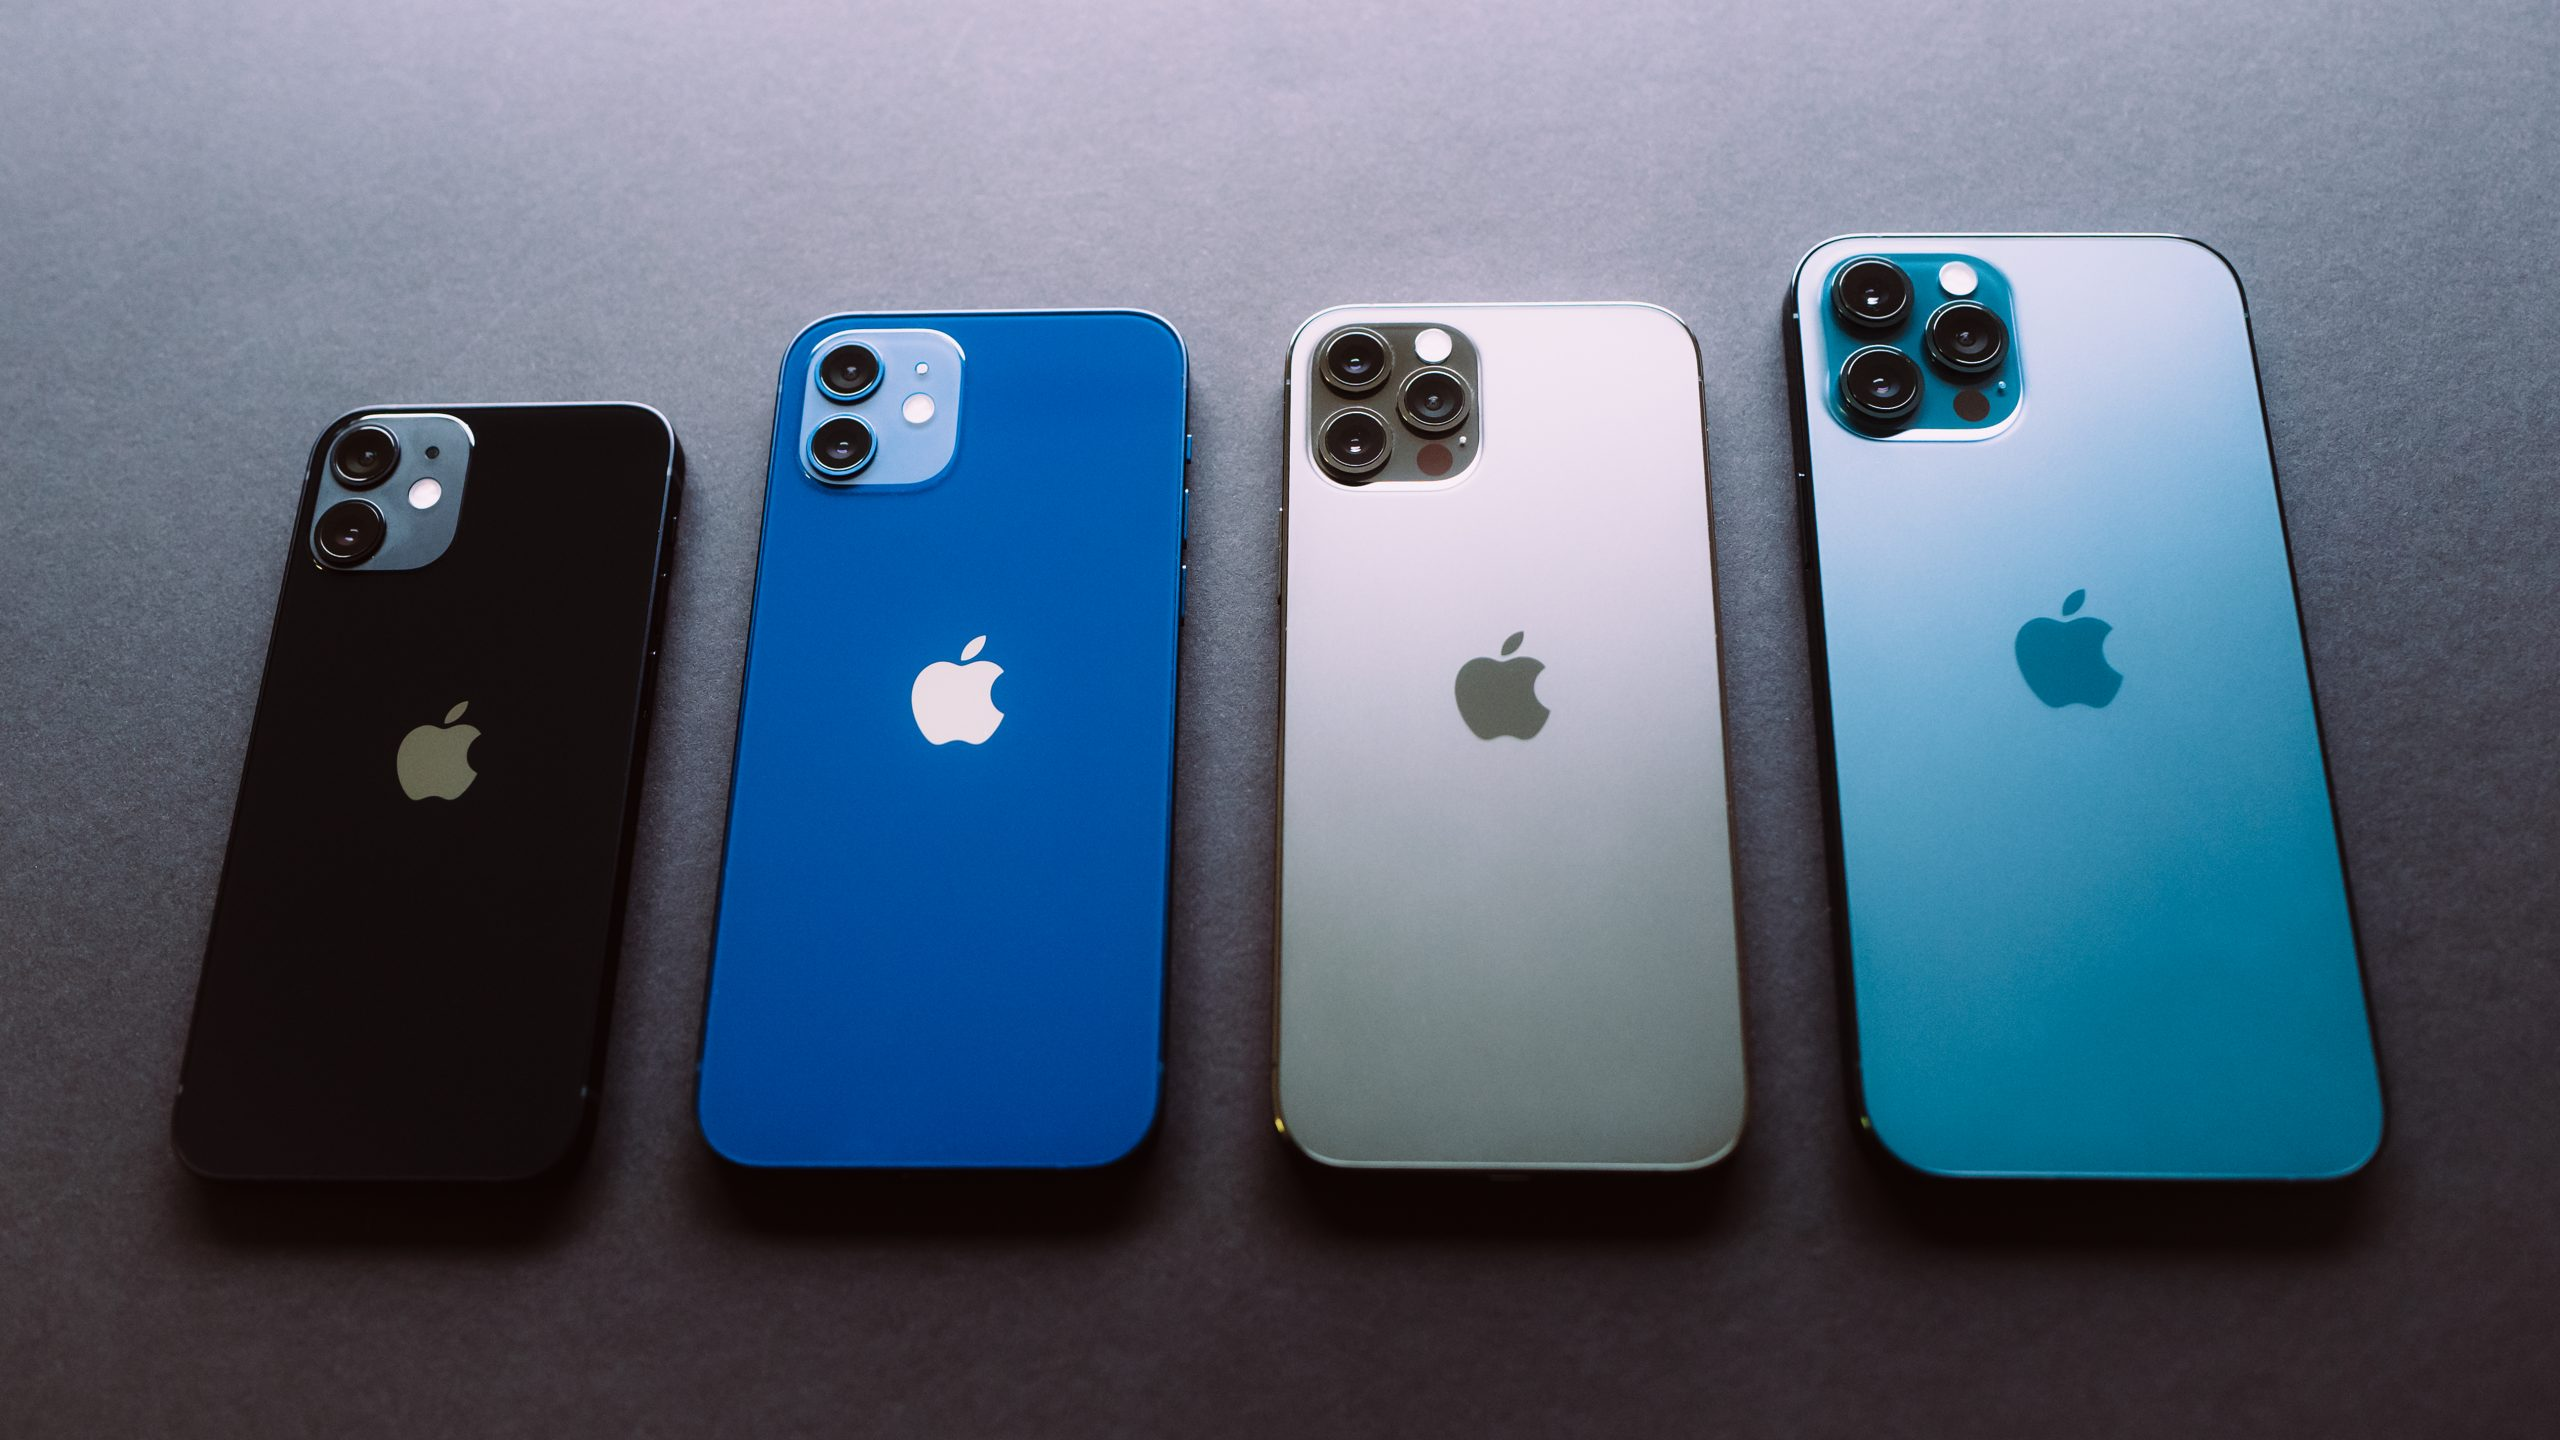 Apple iPhone 12 models